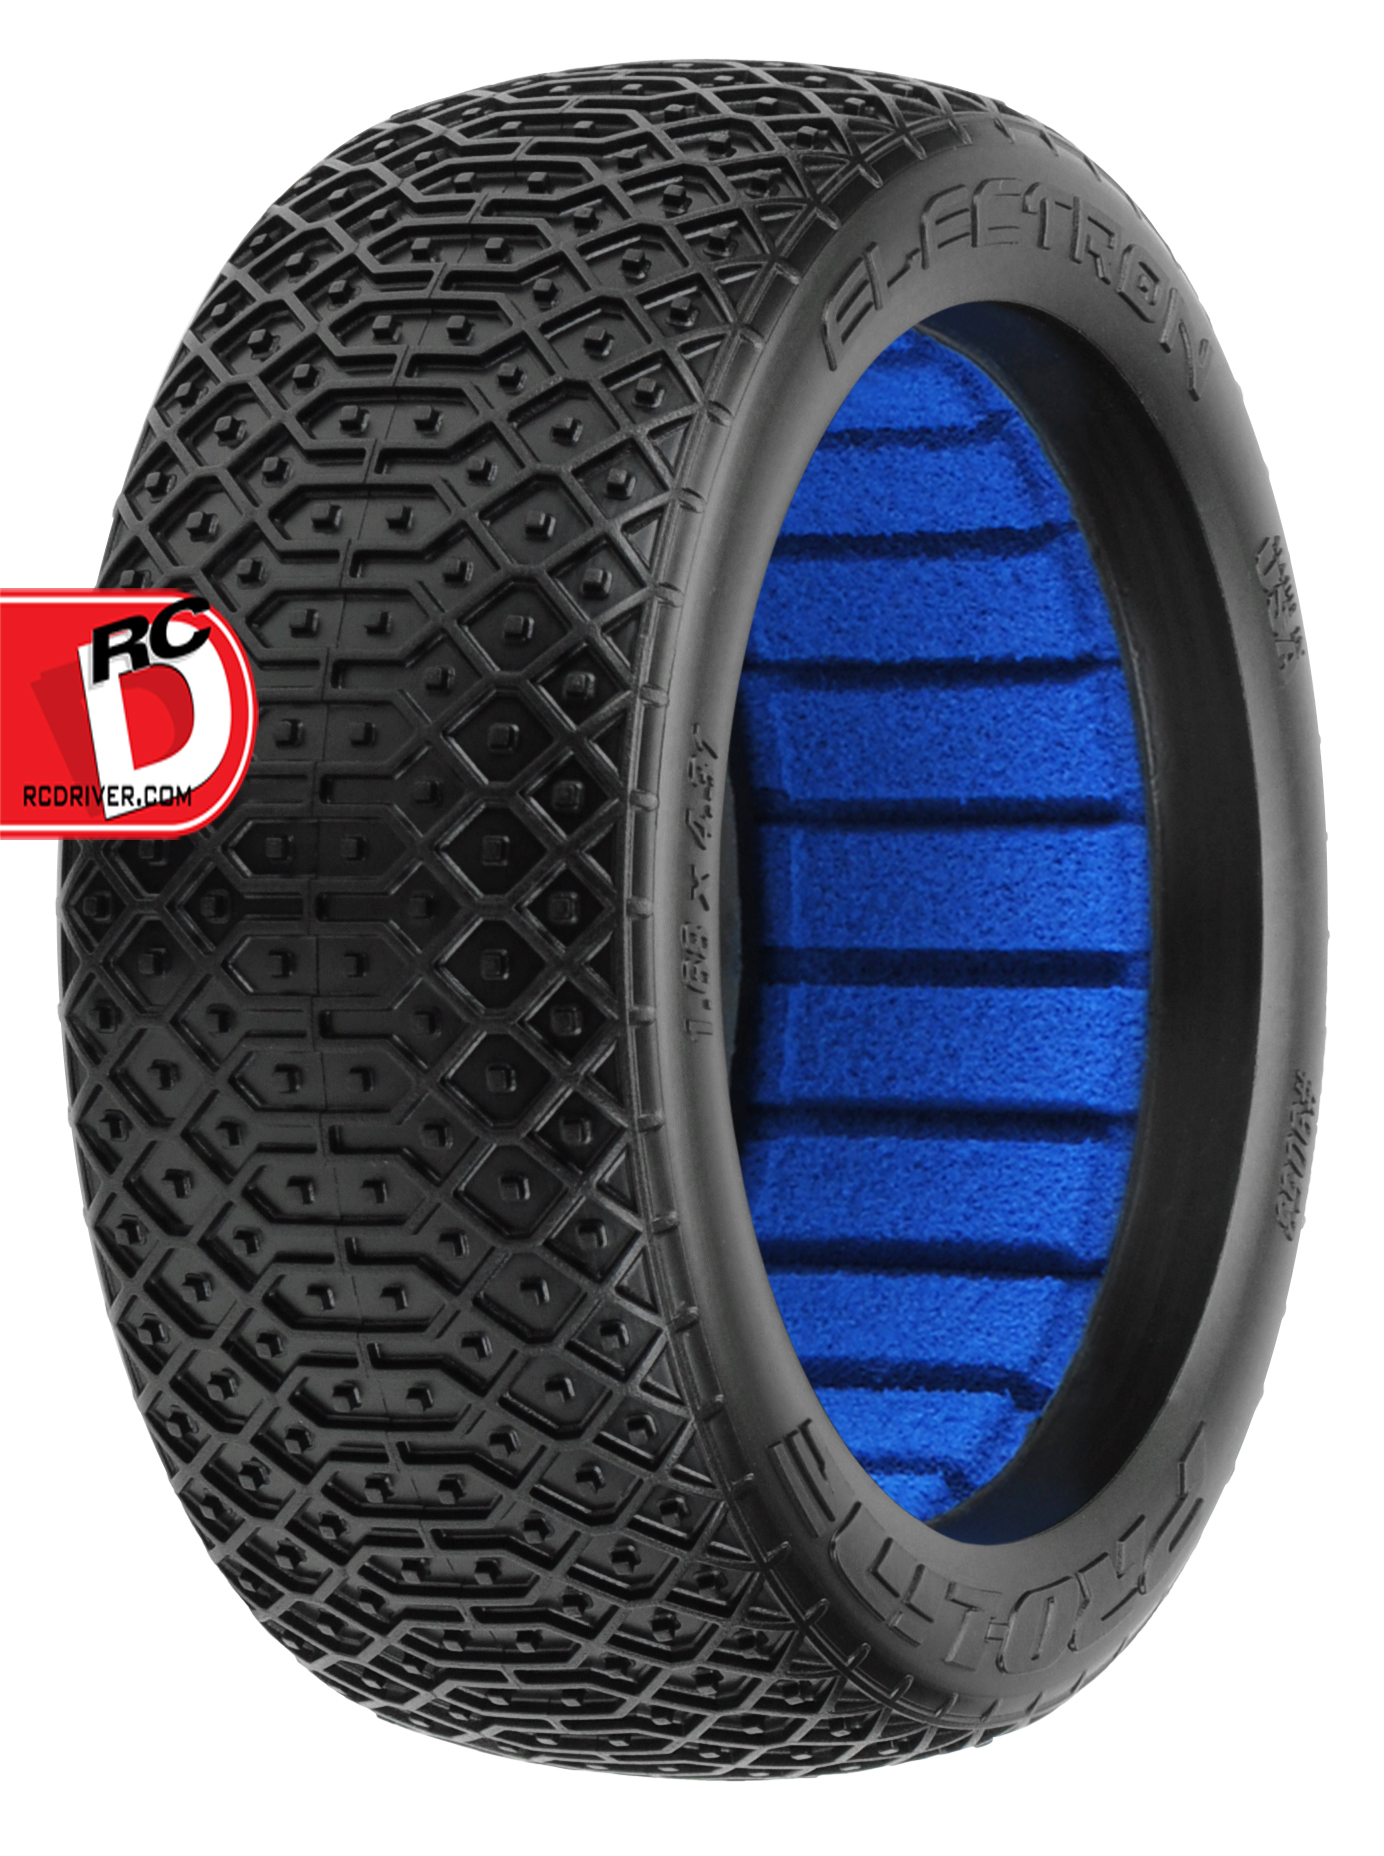 Pro-Line Electron 1:8 Off Road Buggy Tires